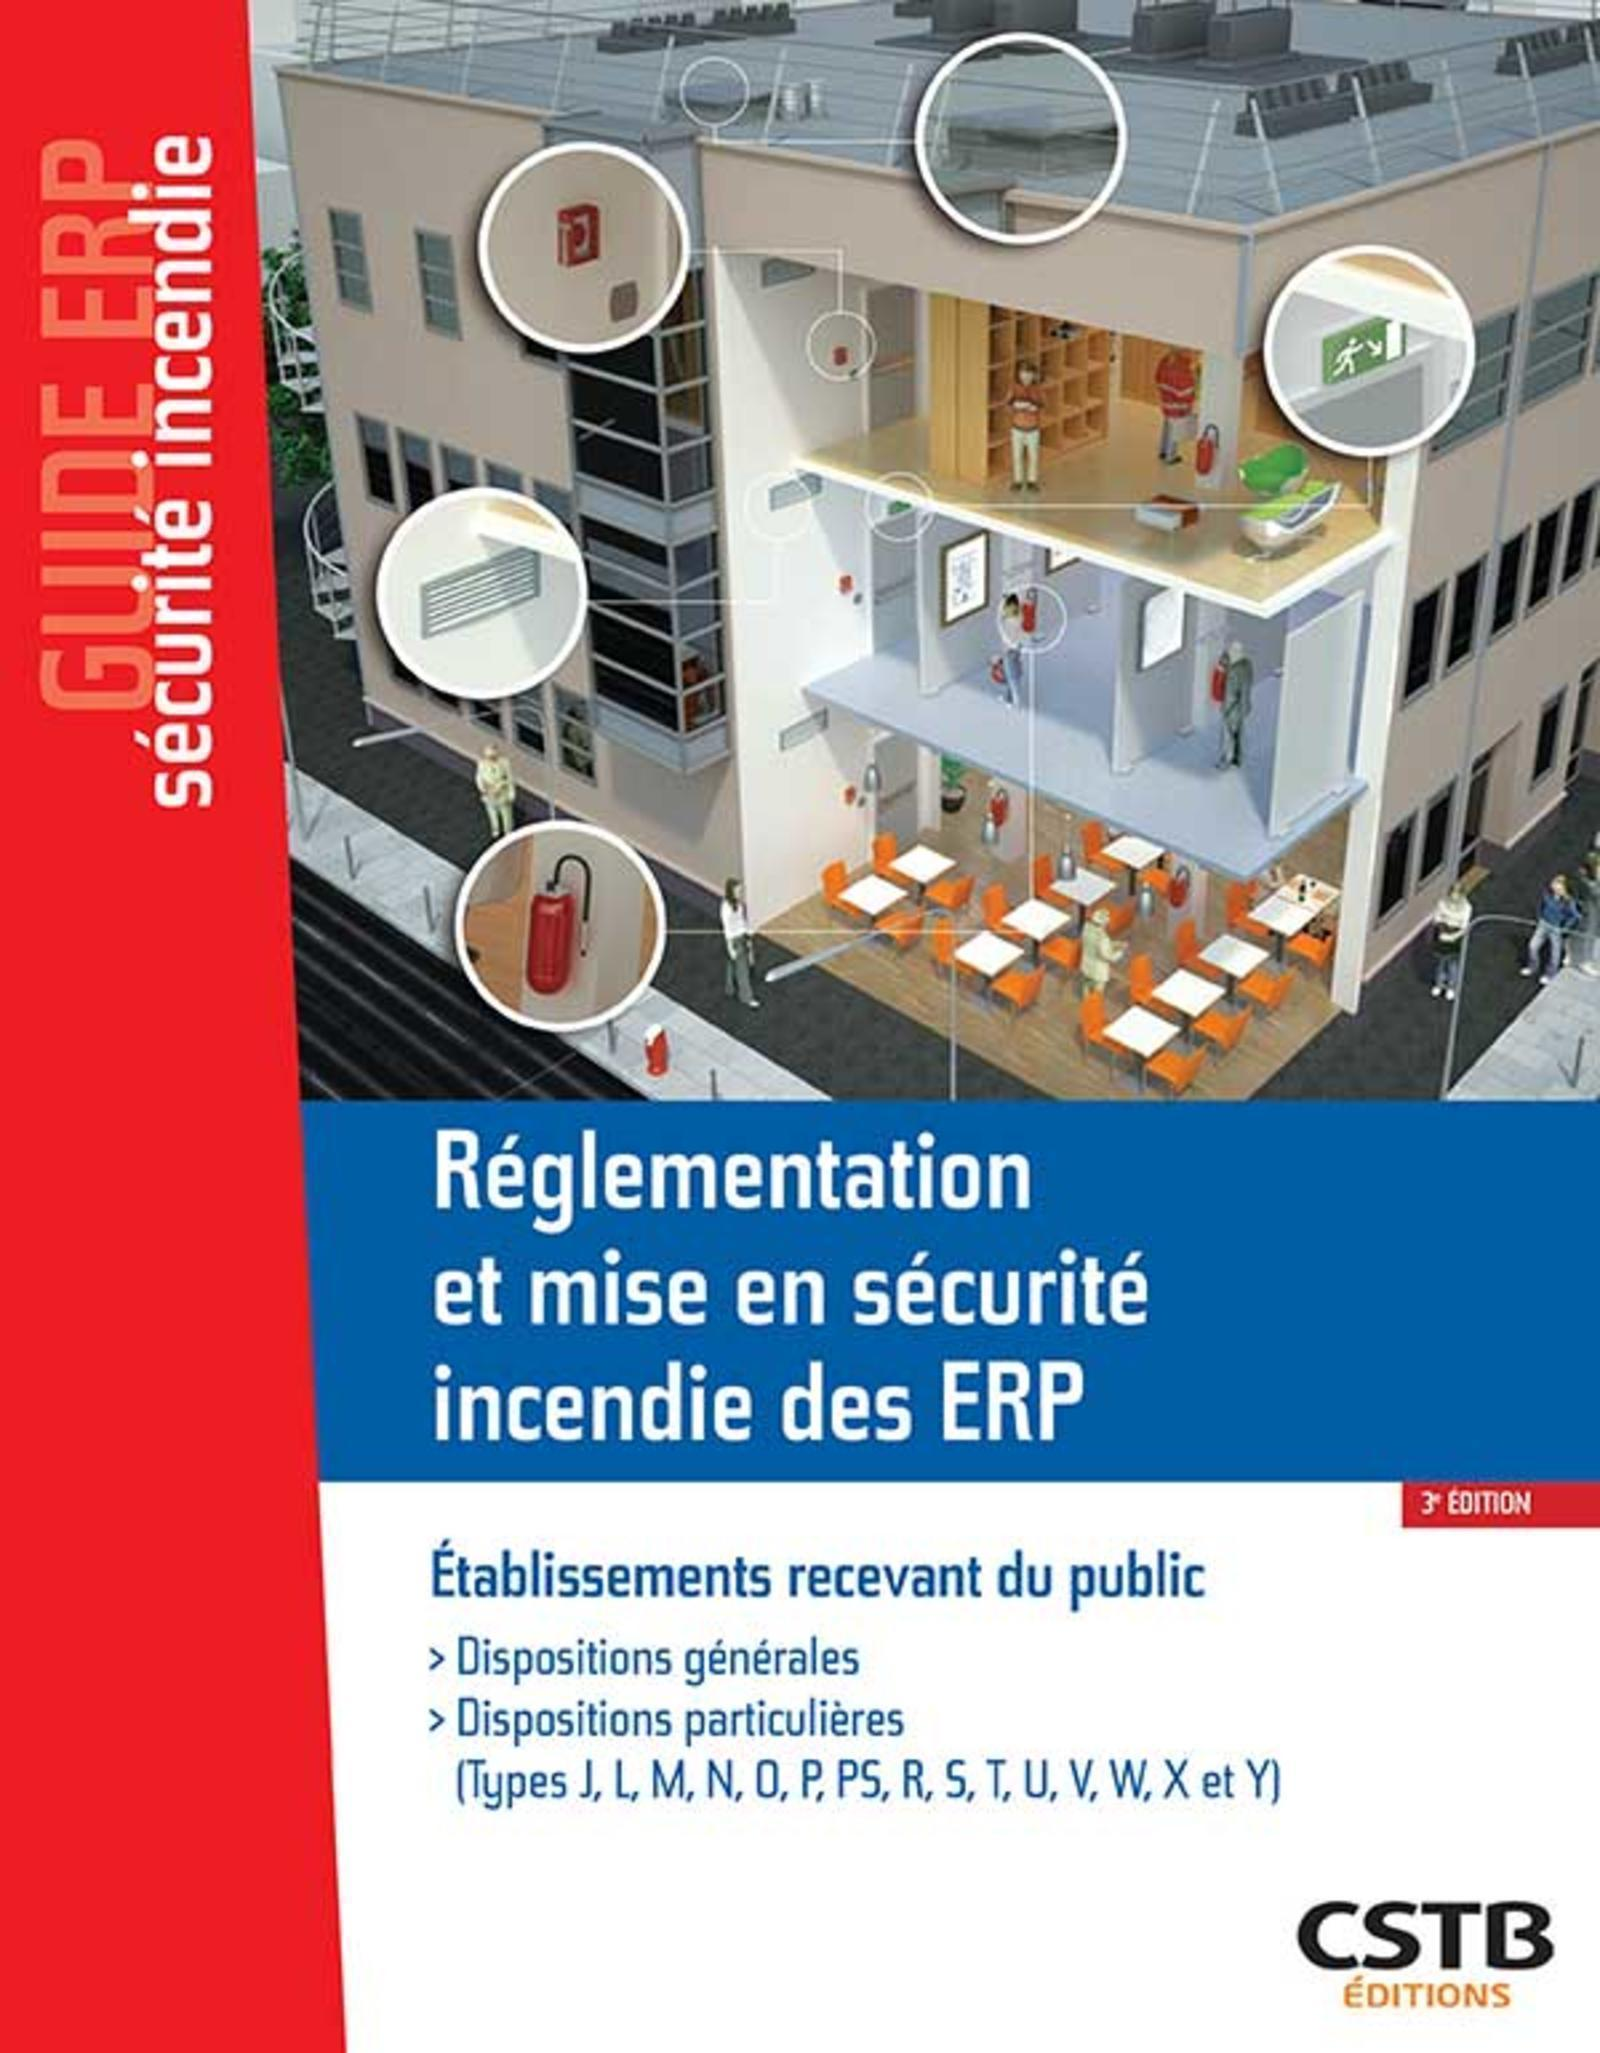 REGLEMENTATION ET MISE EN SECURITE INCENDIE DES ERP - DISPOSITIONS GENERALES - DISPOSITIONS PARTICUL